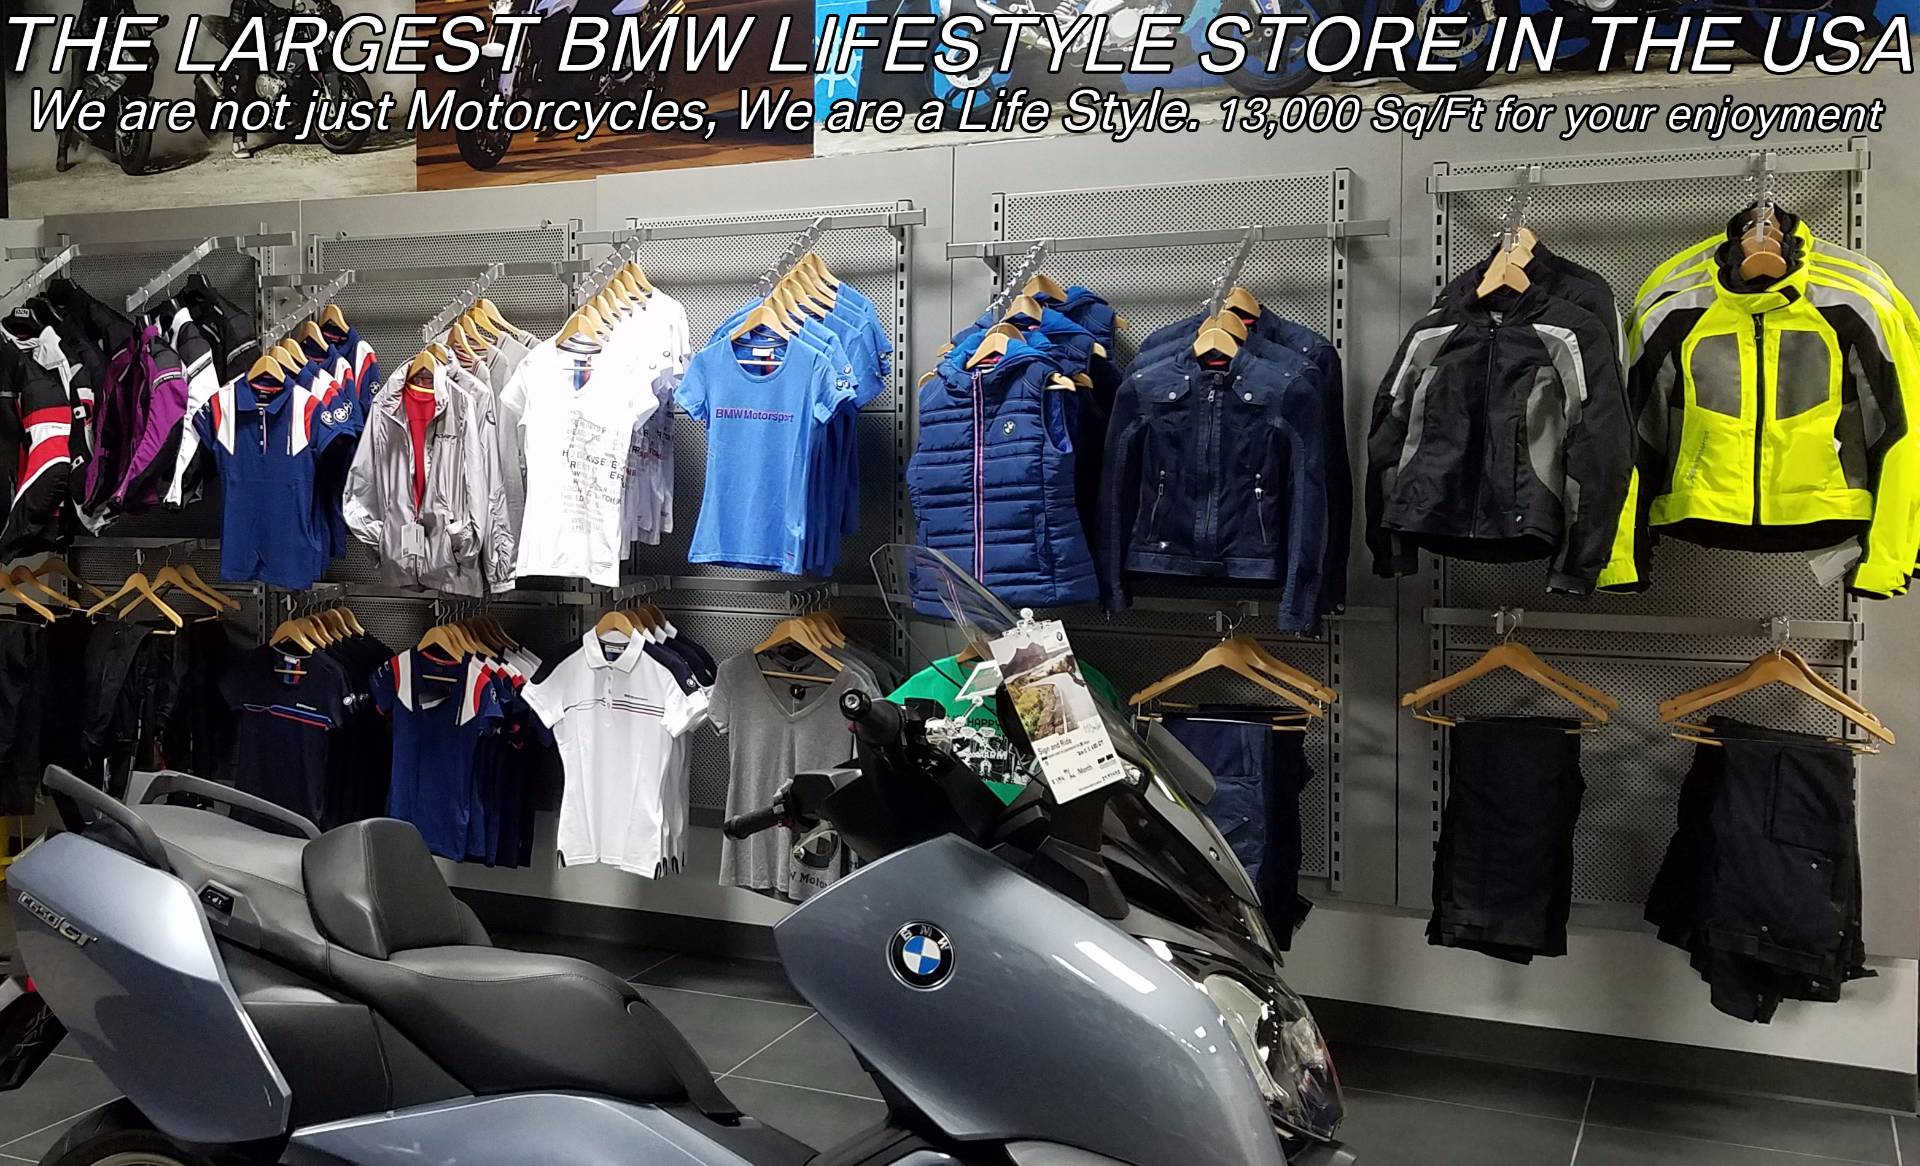 New 2018 BMW R 1200 RT For Sale, BMW R 1200 RT Black For Sale, BMW Motorcycle R 1200RT Carbon, new BMW, New BMW Motorcycle